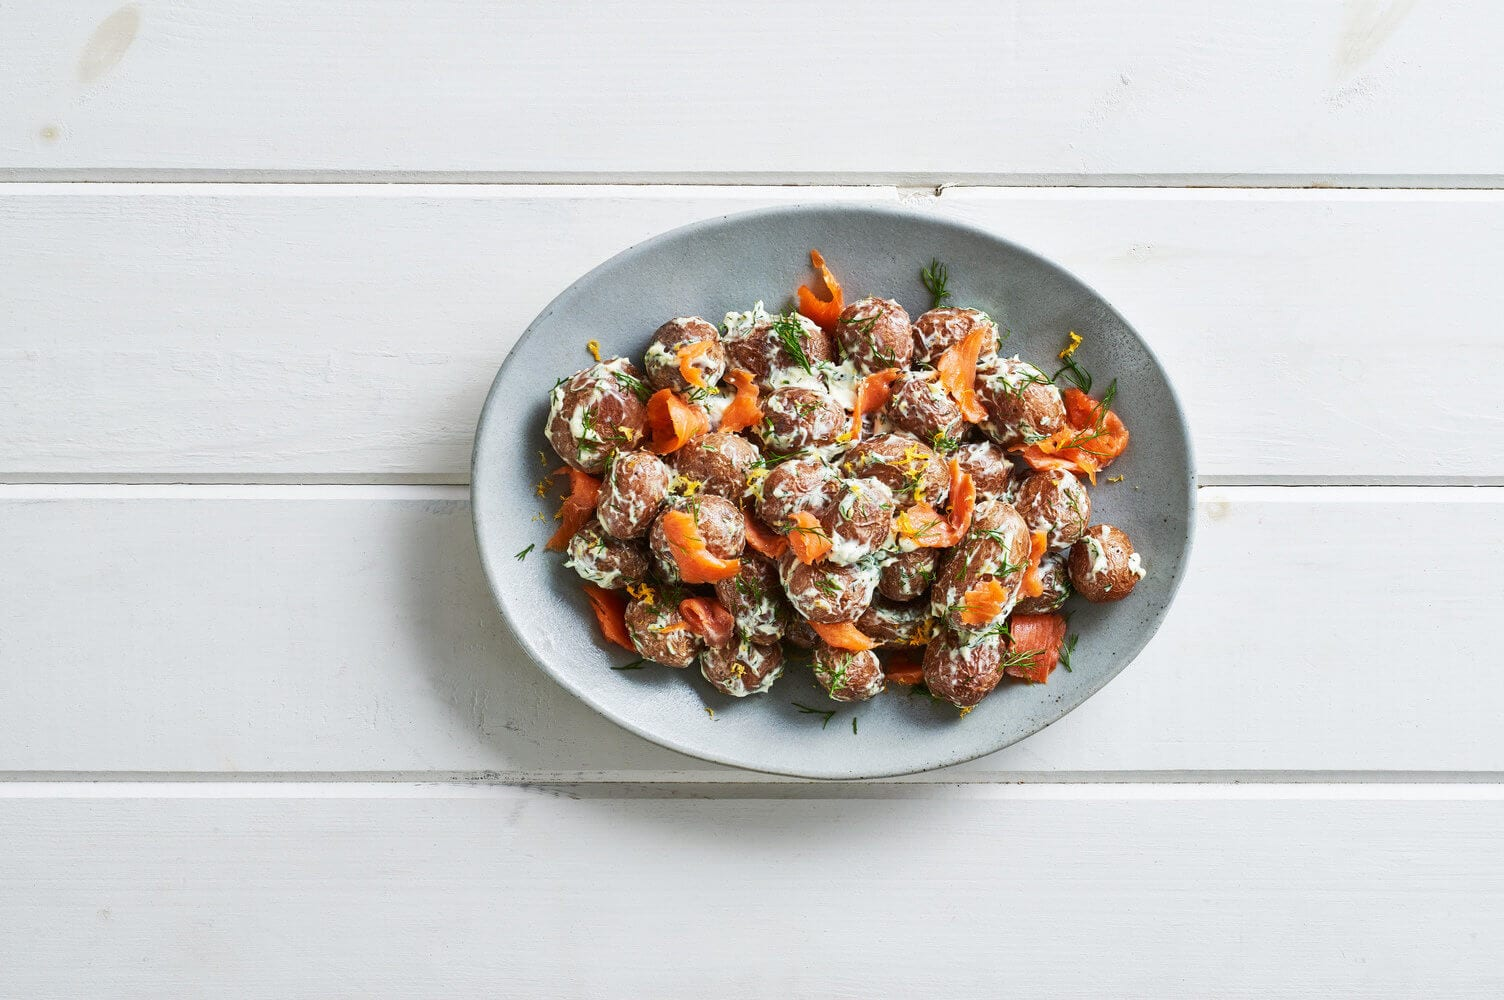 Lox and Cream Cheese Roasted Potatoes